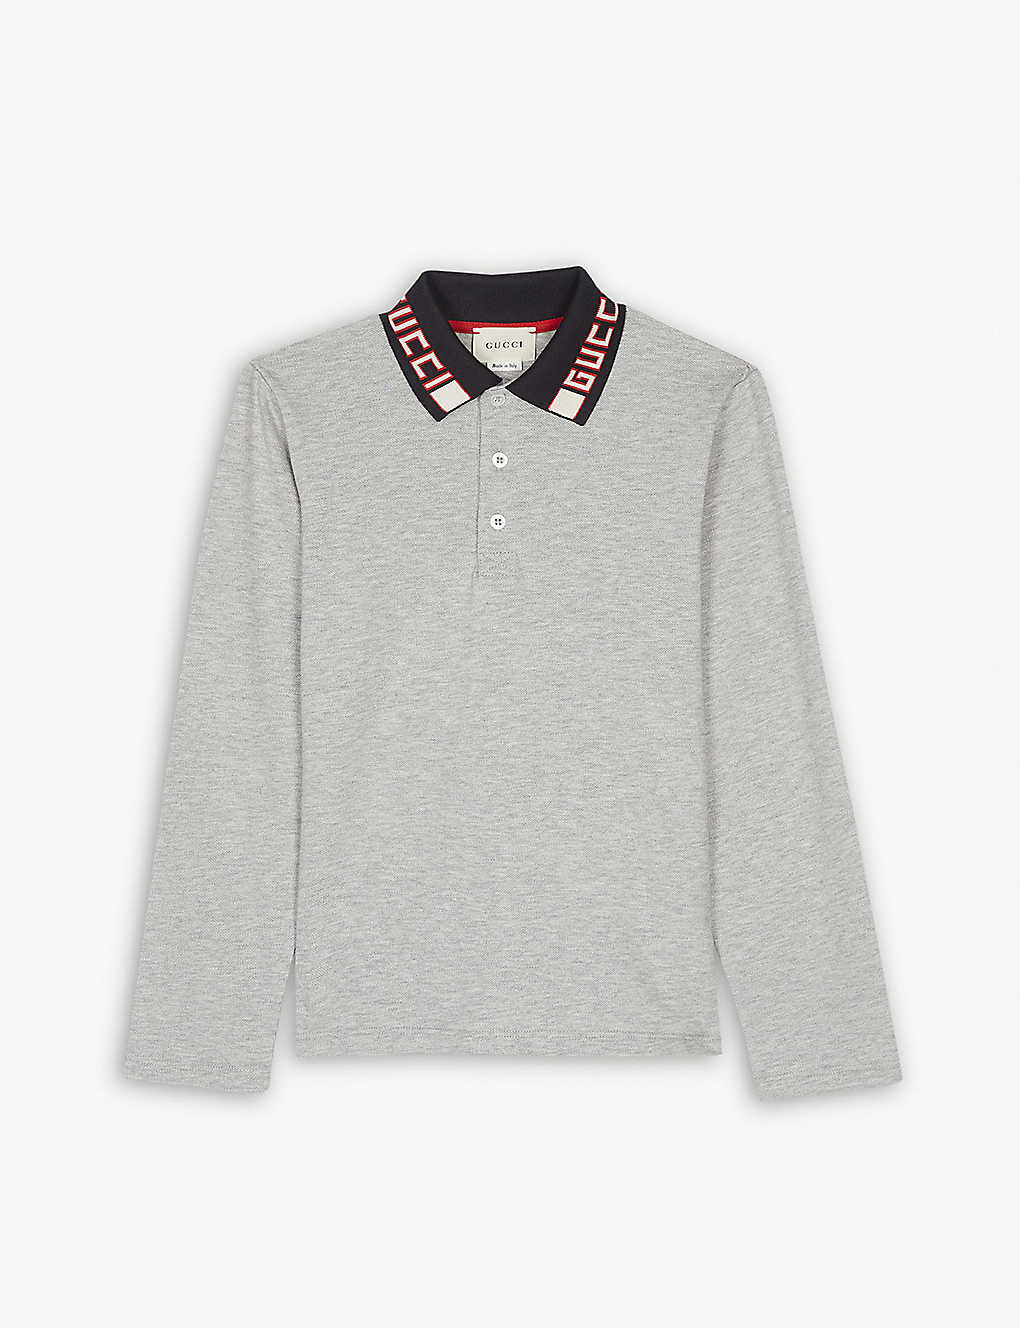 b670494c6e6 GUCCI - Long-sleeved polo shirt (4-12 years)